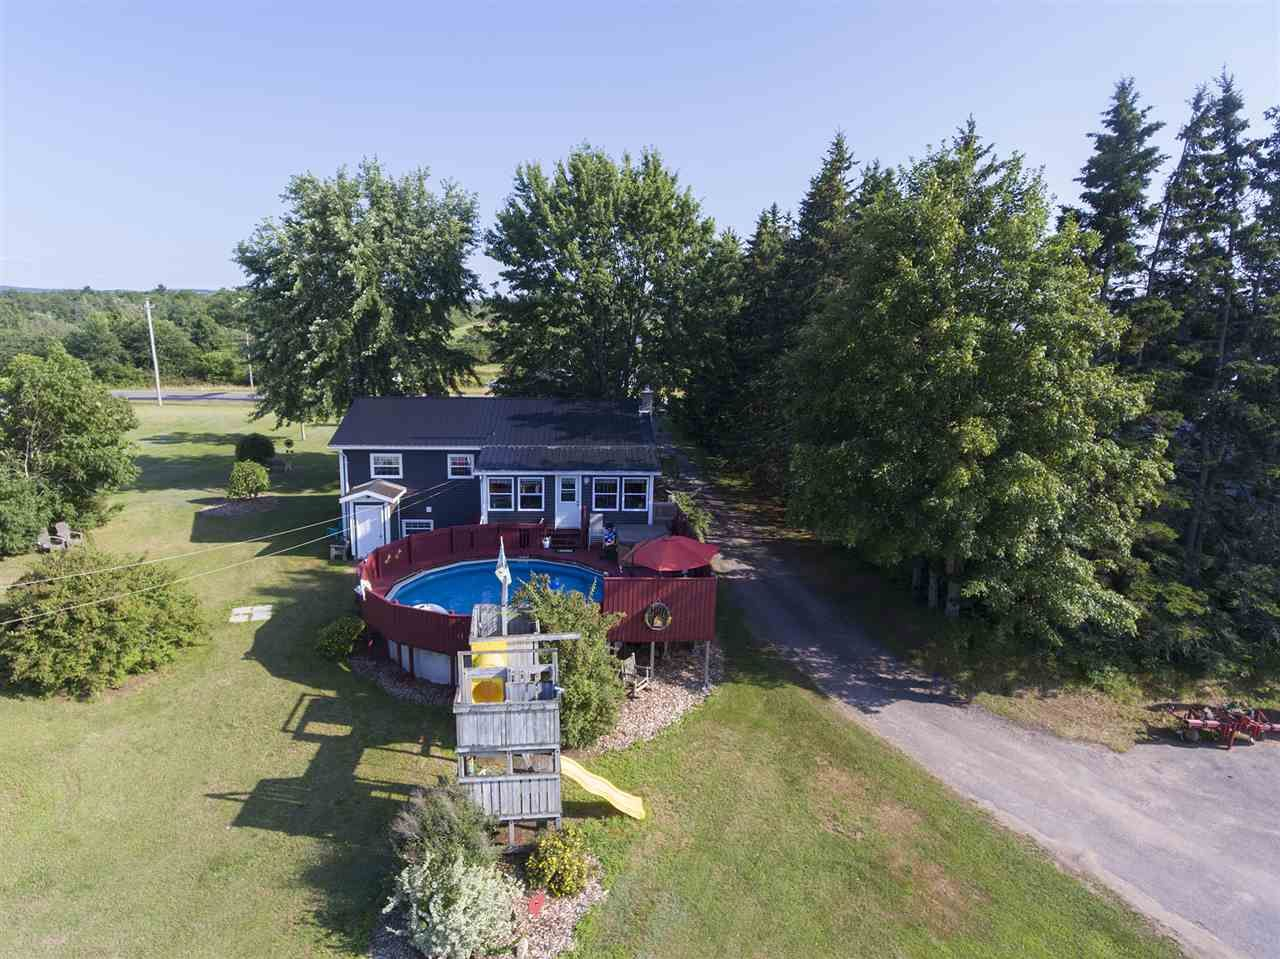 Main Photo: 2969 Highway 1 in Aylesford East: 404-Kings County Residential for sale (Annapolis Valley)  : MLS®# 201919453